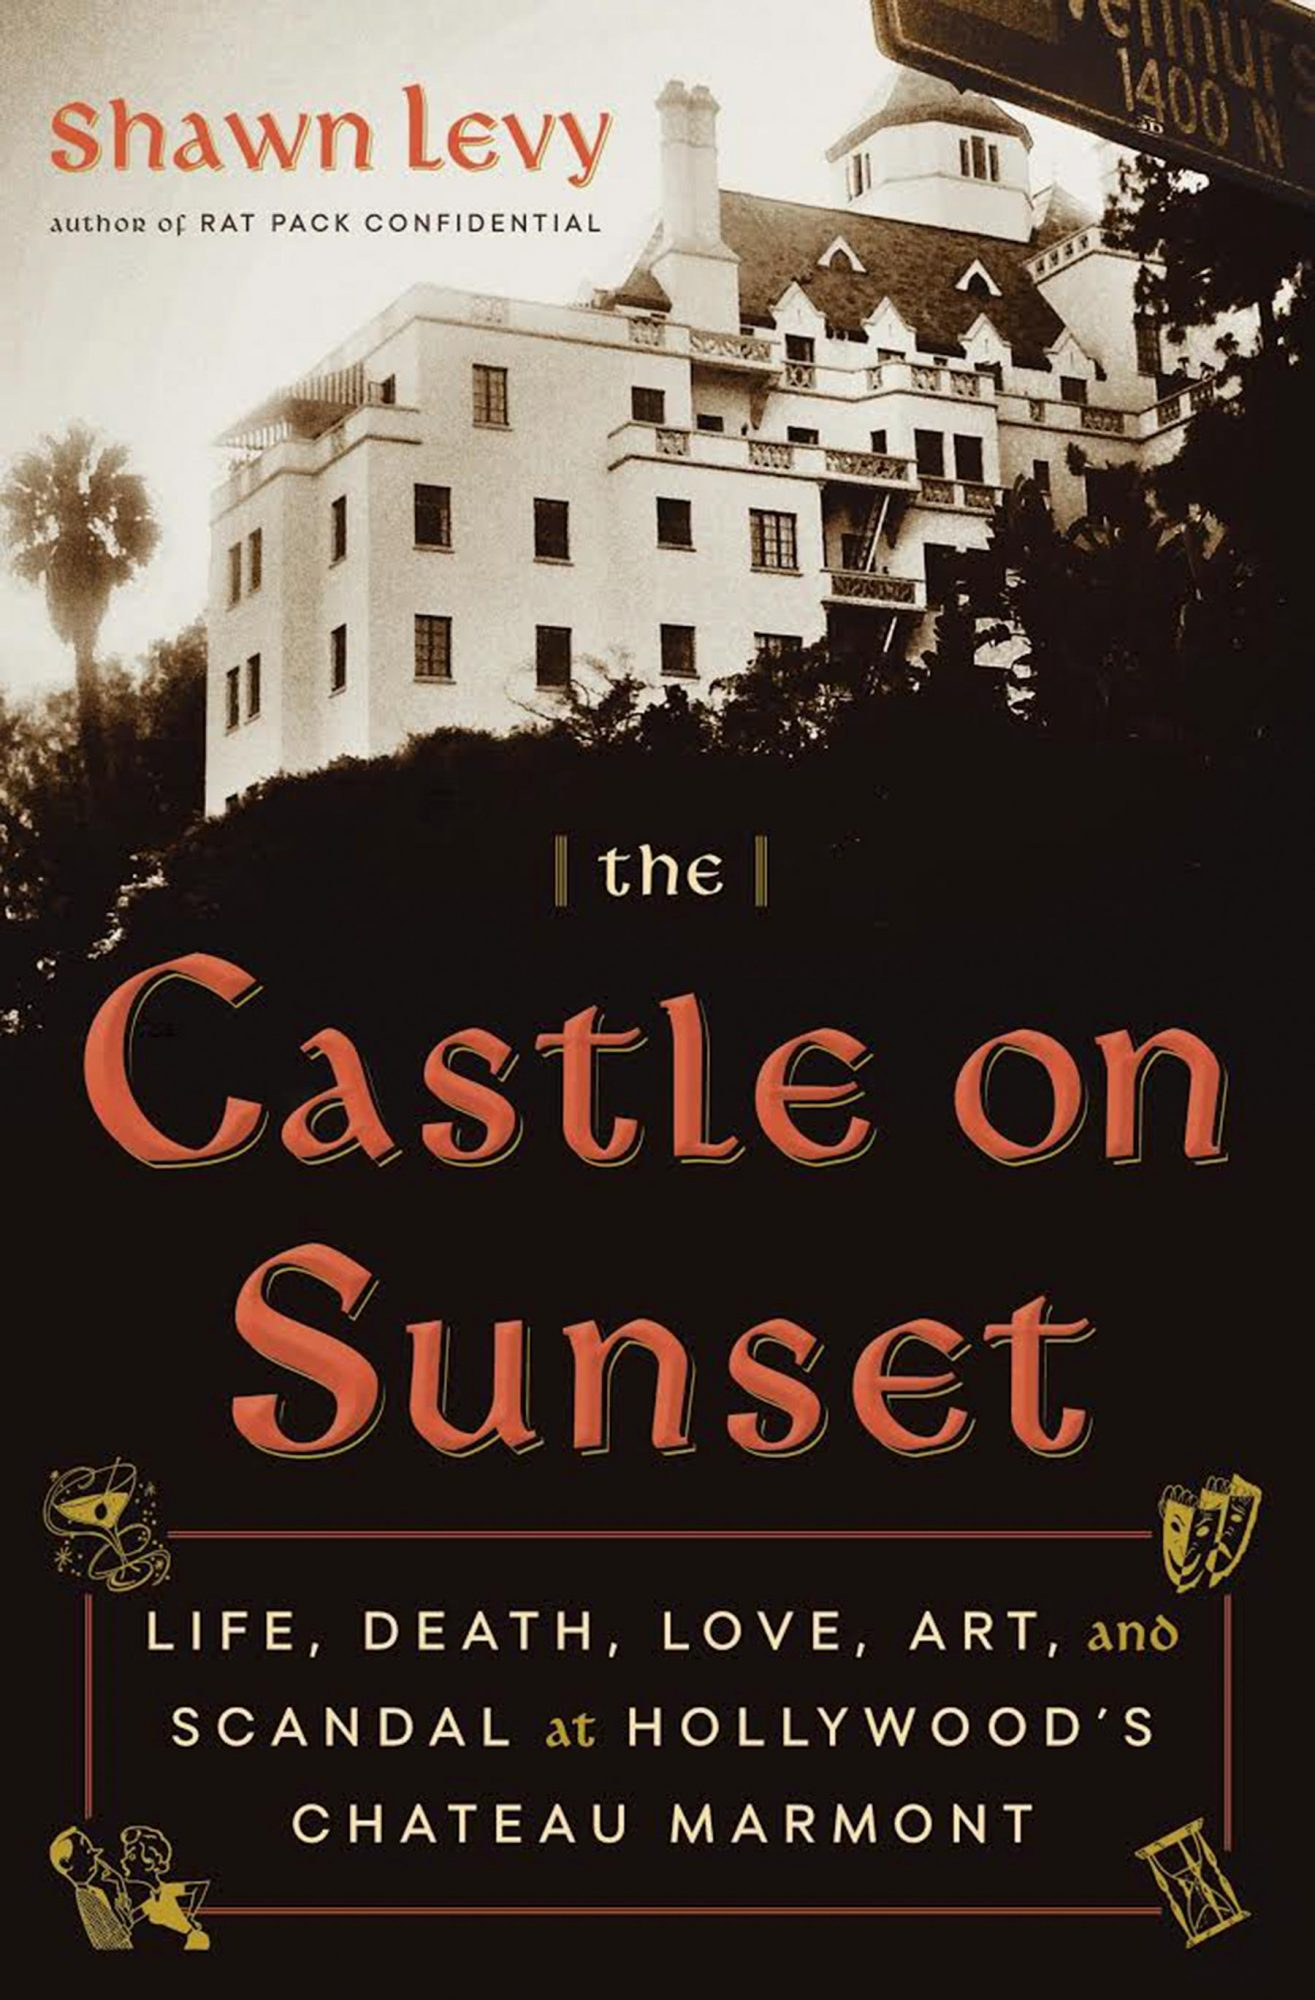 The Castle on Sunset: Life, Death, Love, Art, and Scandal at Hollywood's Chateau Marmont Shawn Levy Knopf Doubleday Publishing Group, May 7, 2019